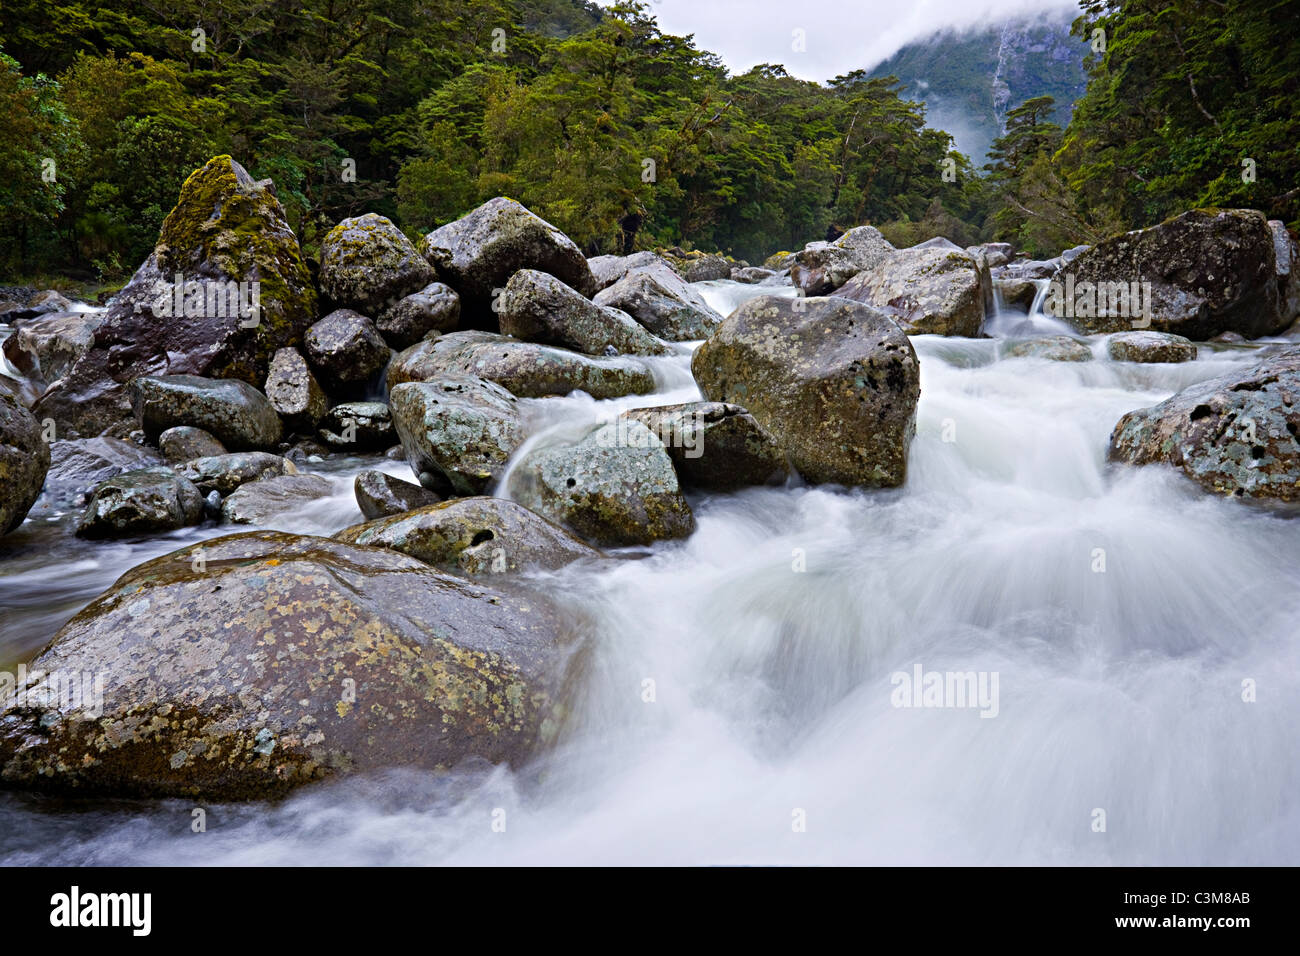 Fluss im Fiordland Nationalpark, Südinsel, Neuseeland Stockbild